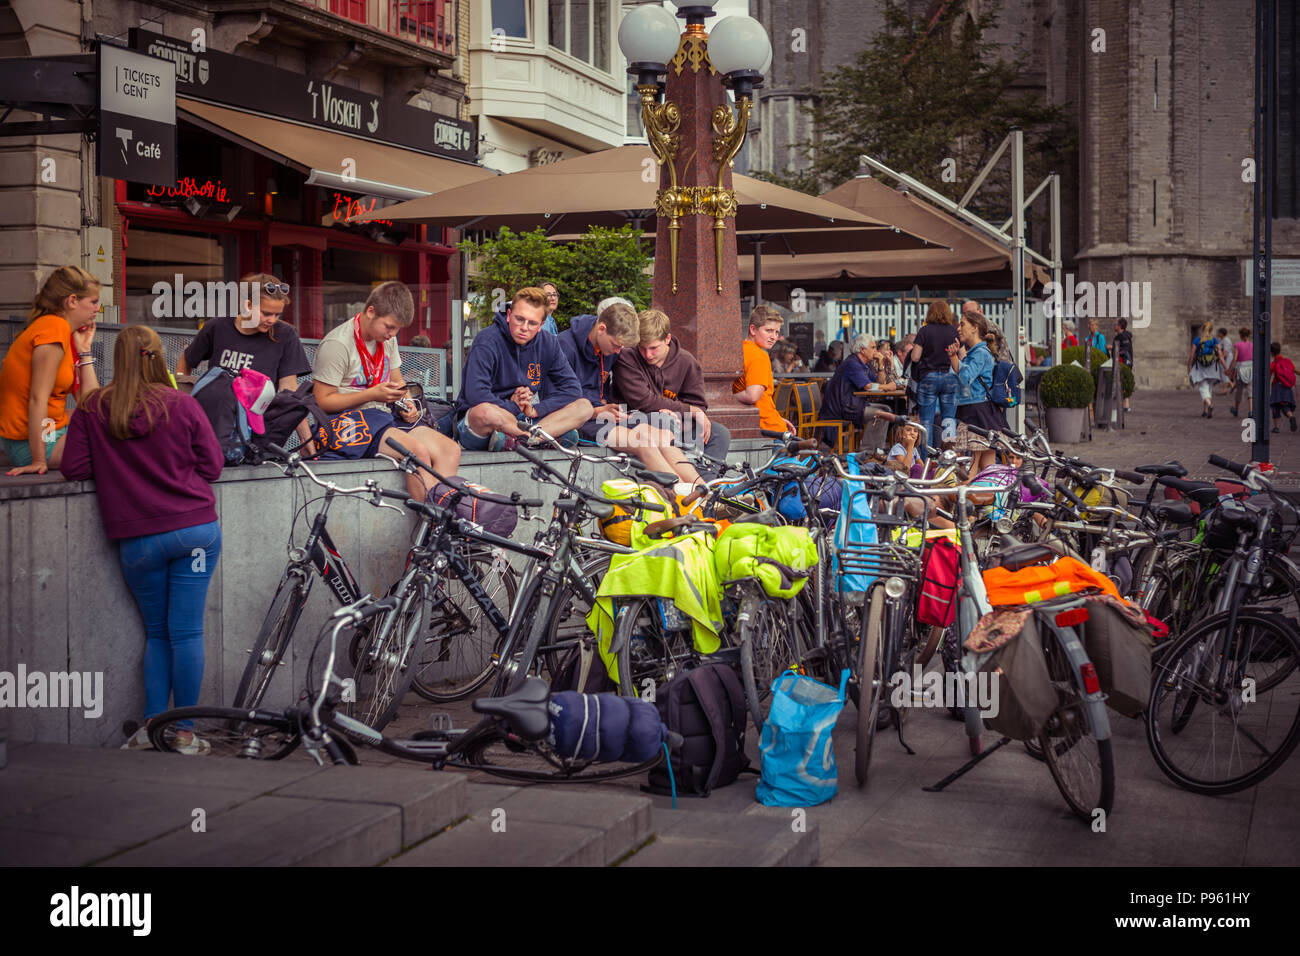 A group of young bicyclists in Ghent - Stock Image